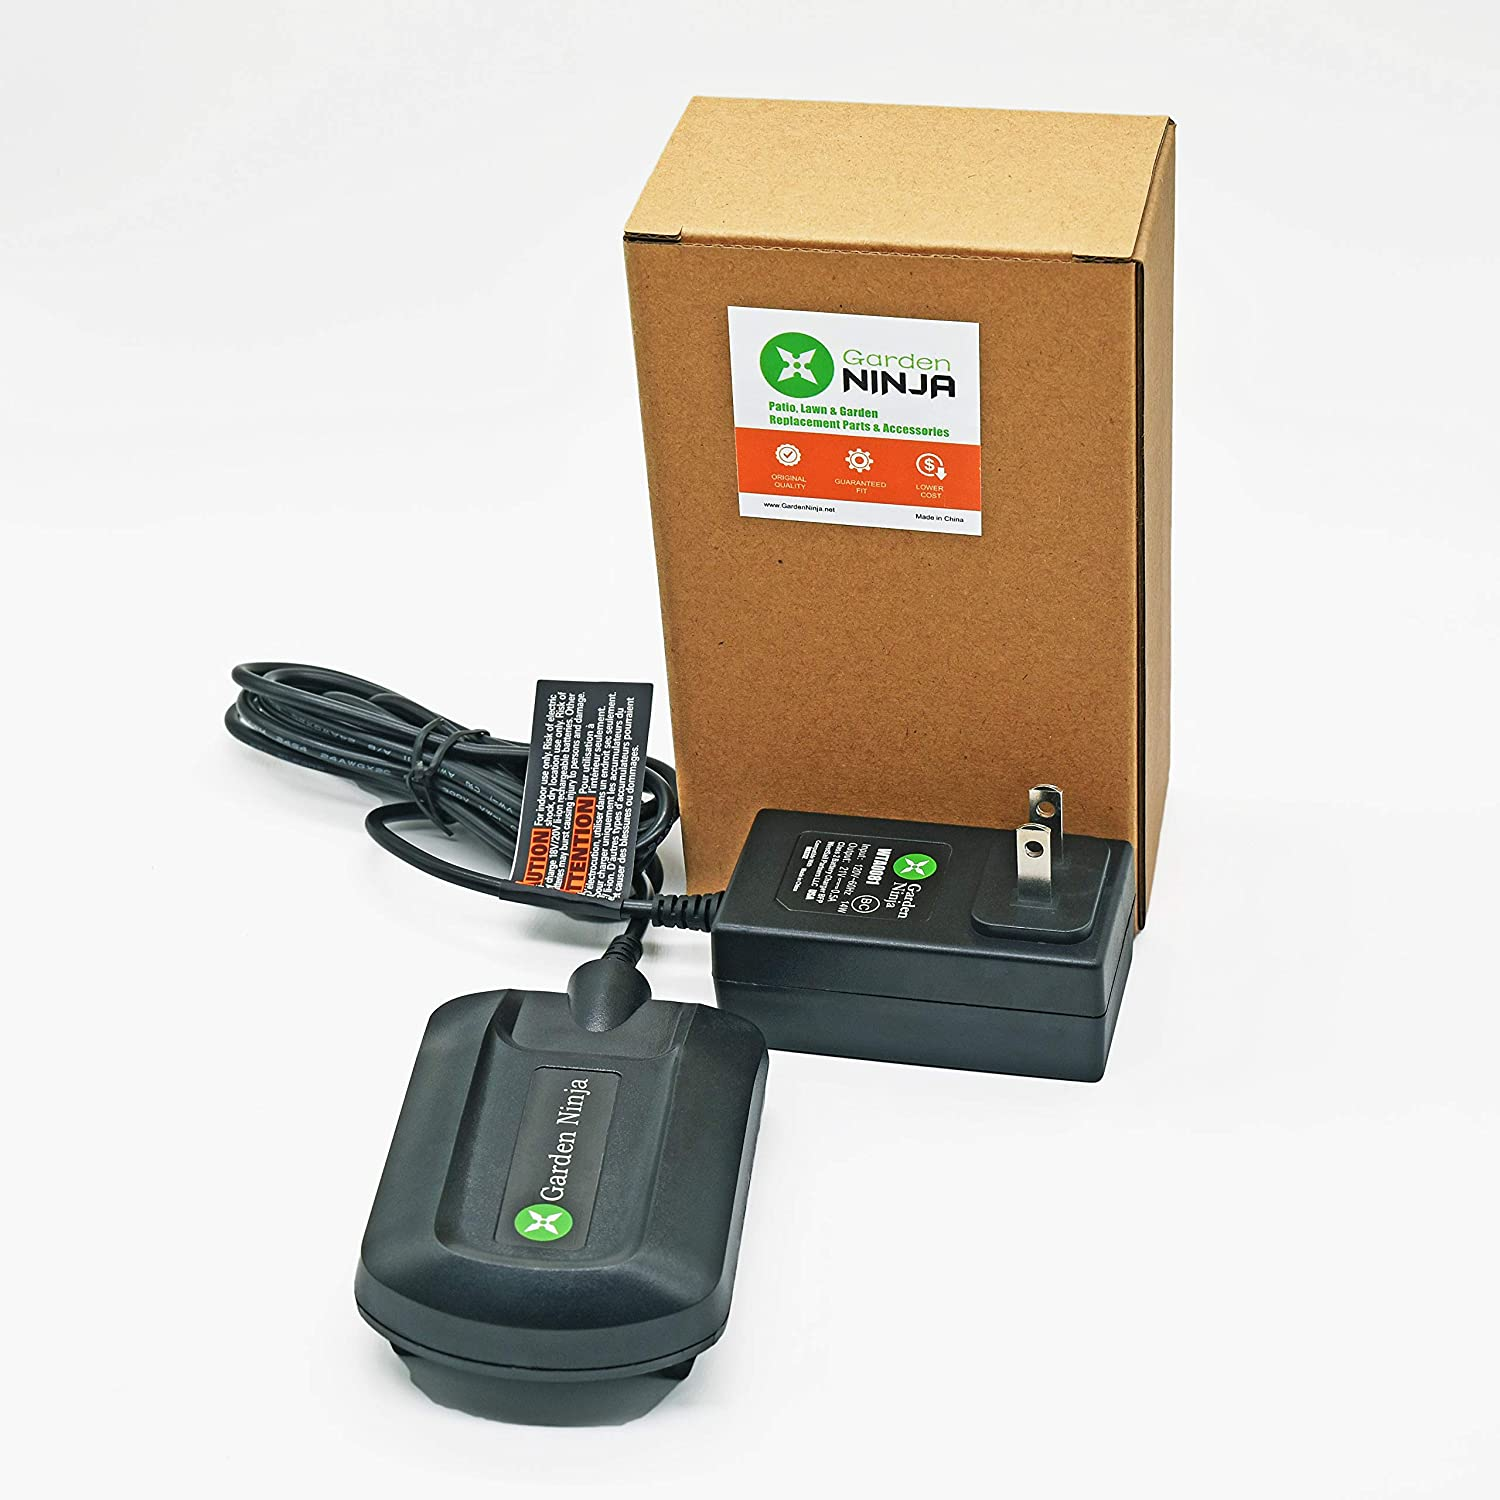 Garden NINJA Charger for Worx 18V and 20V Lithium Ion Batteries WA3520 and WA3525, Compatible with Charger WA3732